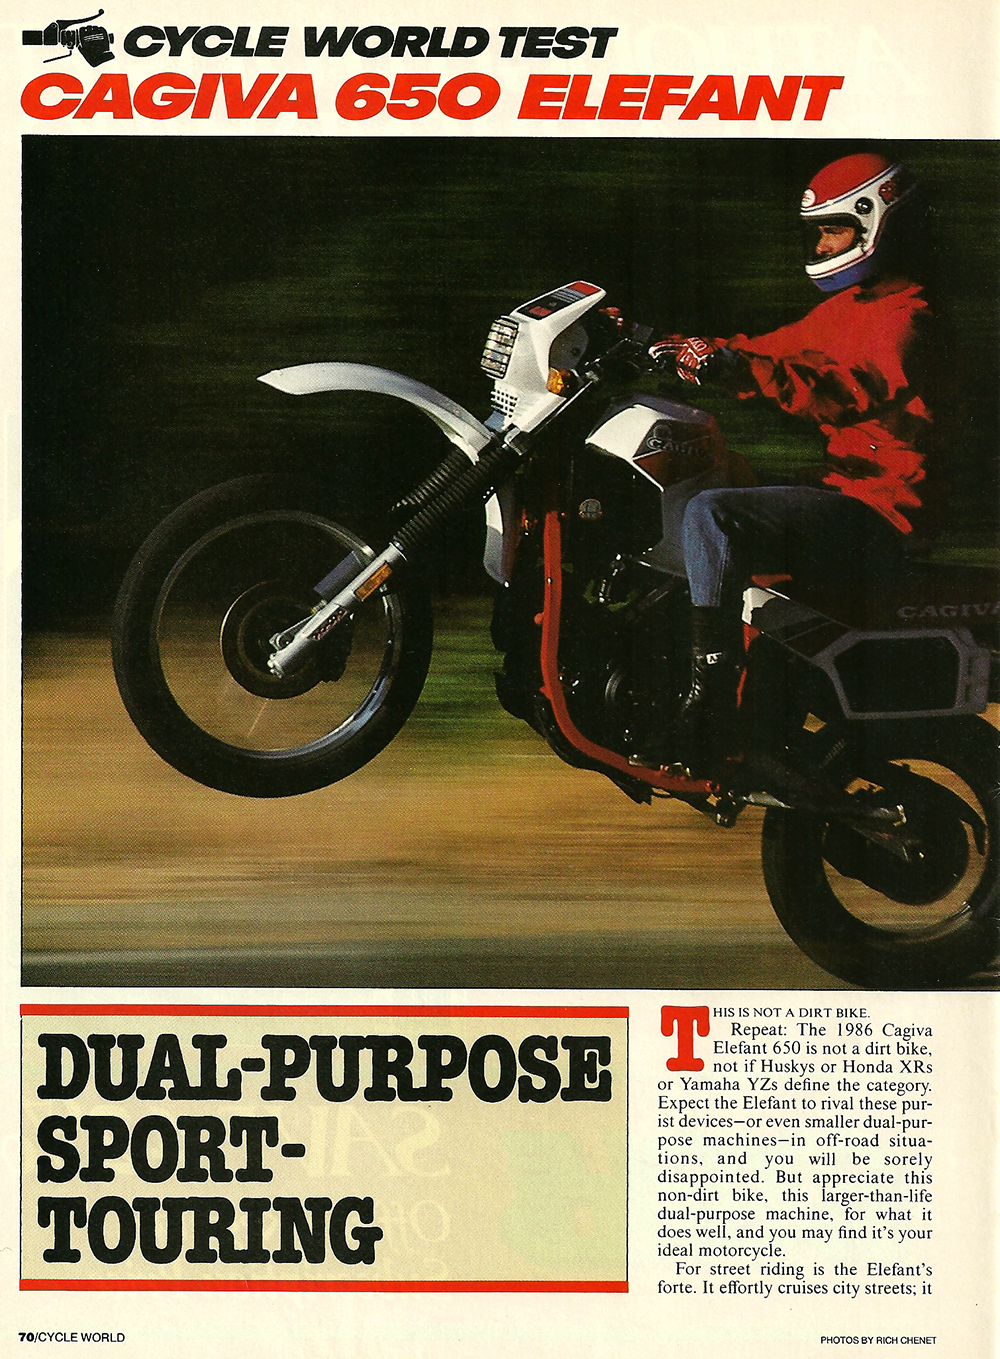 1985 Cagiva 650 Elefant road test 01.jpg